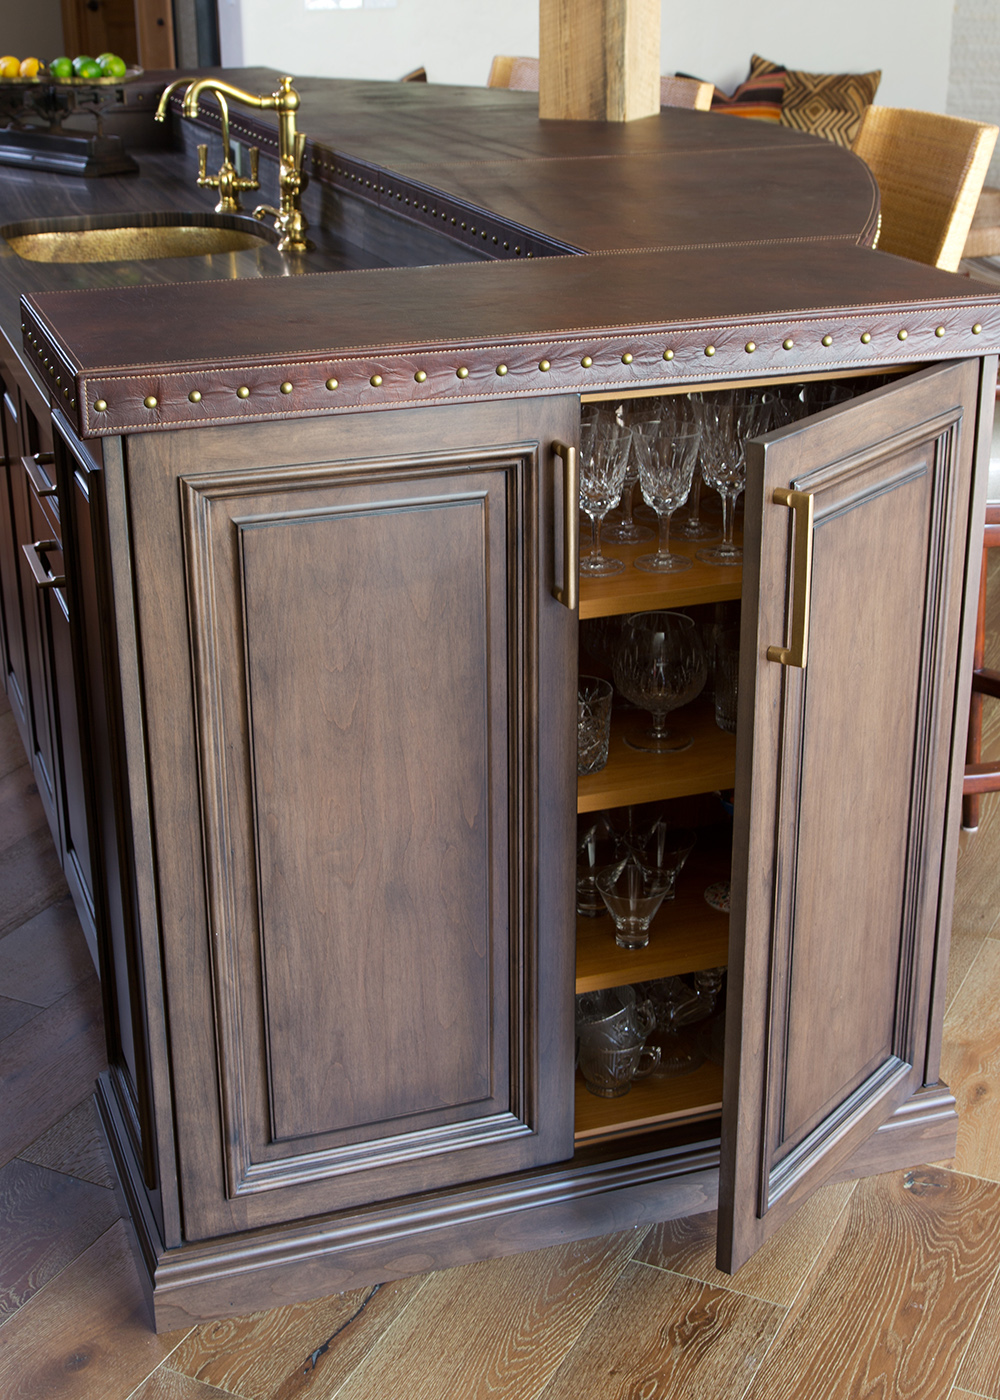 Mahogany island, custom cabinetry